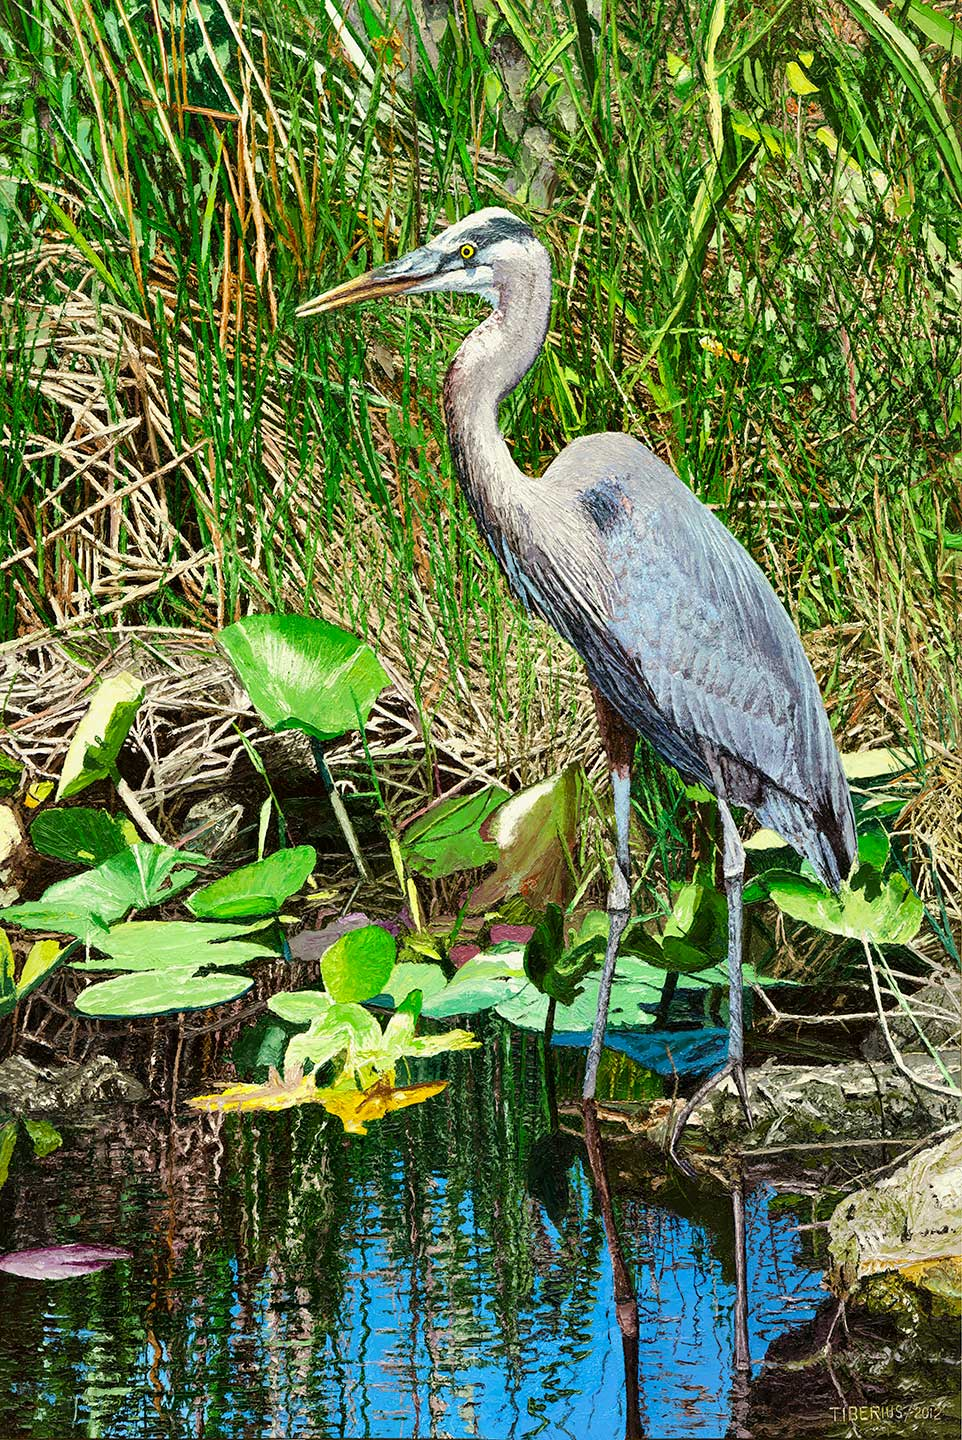 Sawgrass and Great Blue Heron (sold)  |  Richard G. Tiberius